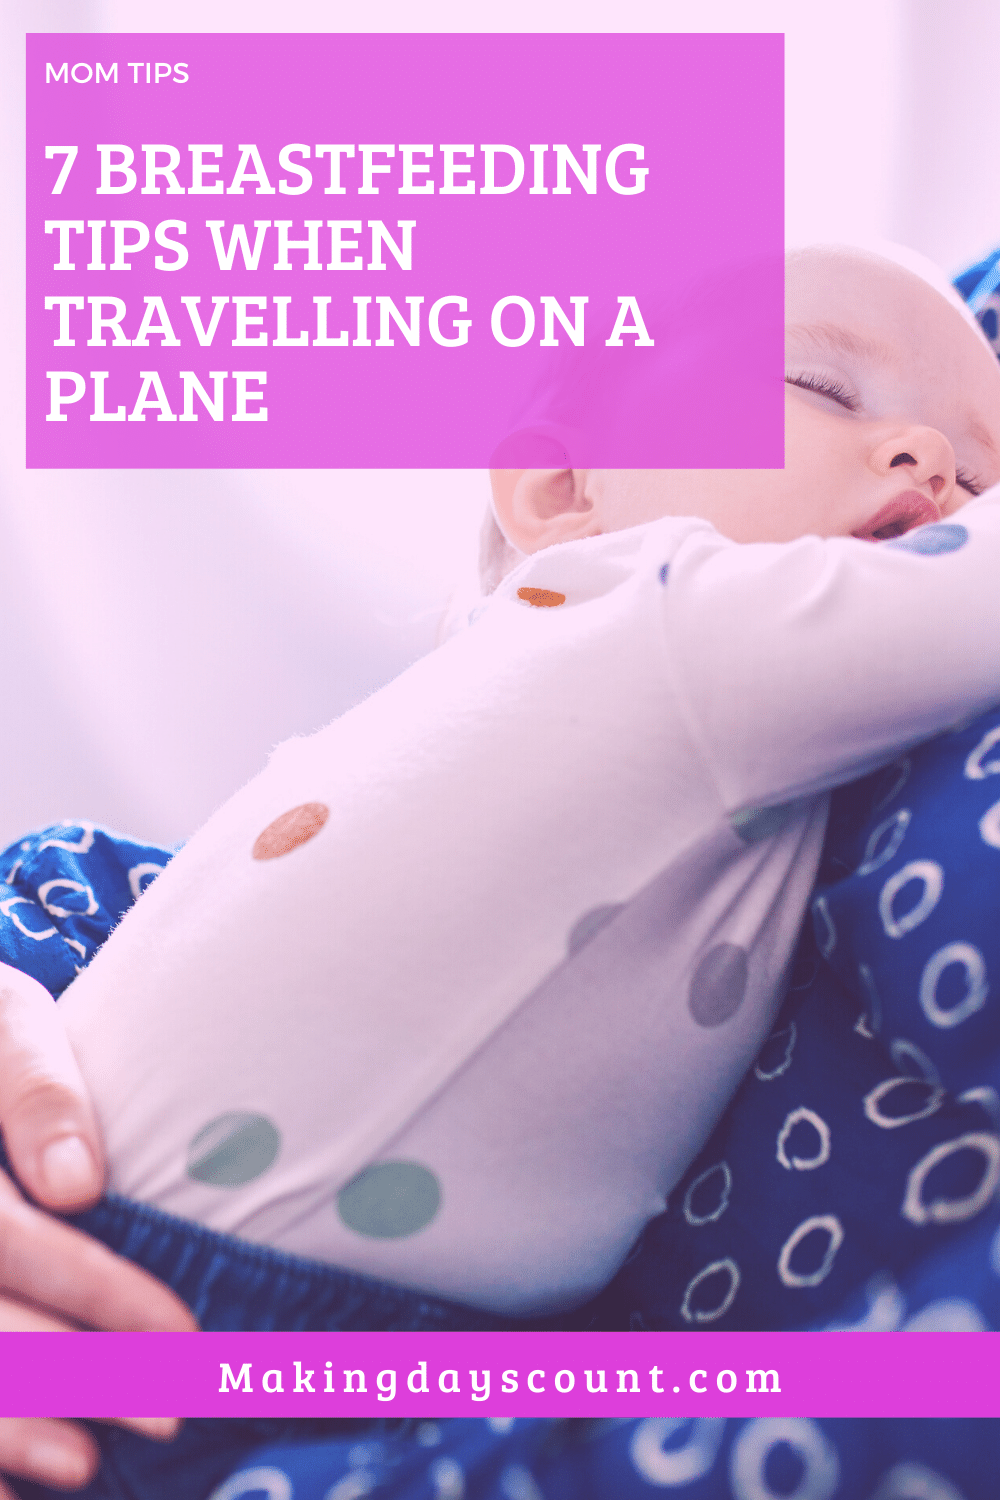 Breastfeeding on the plane